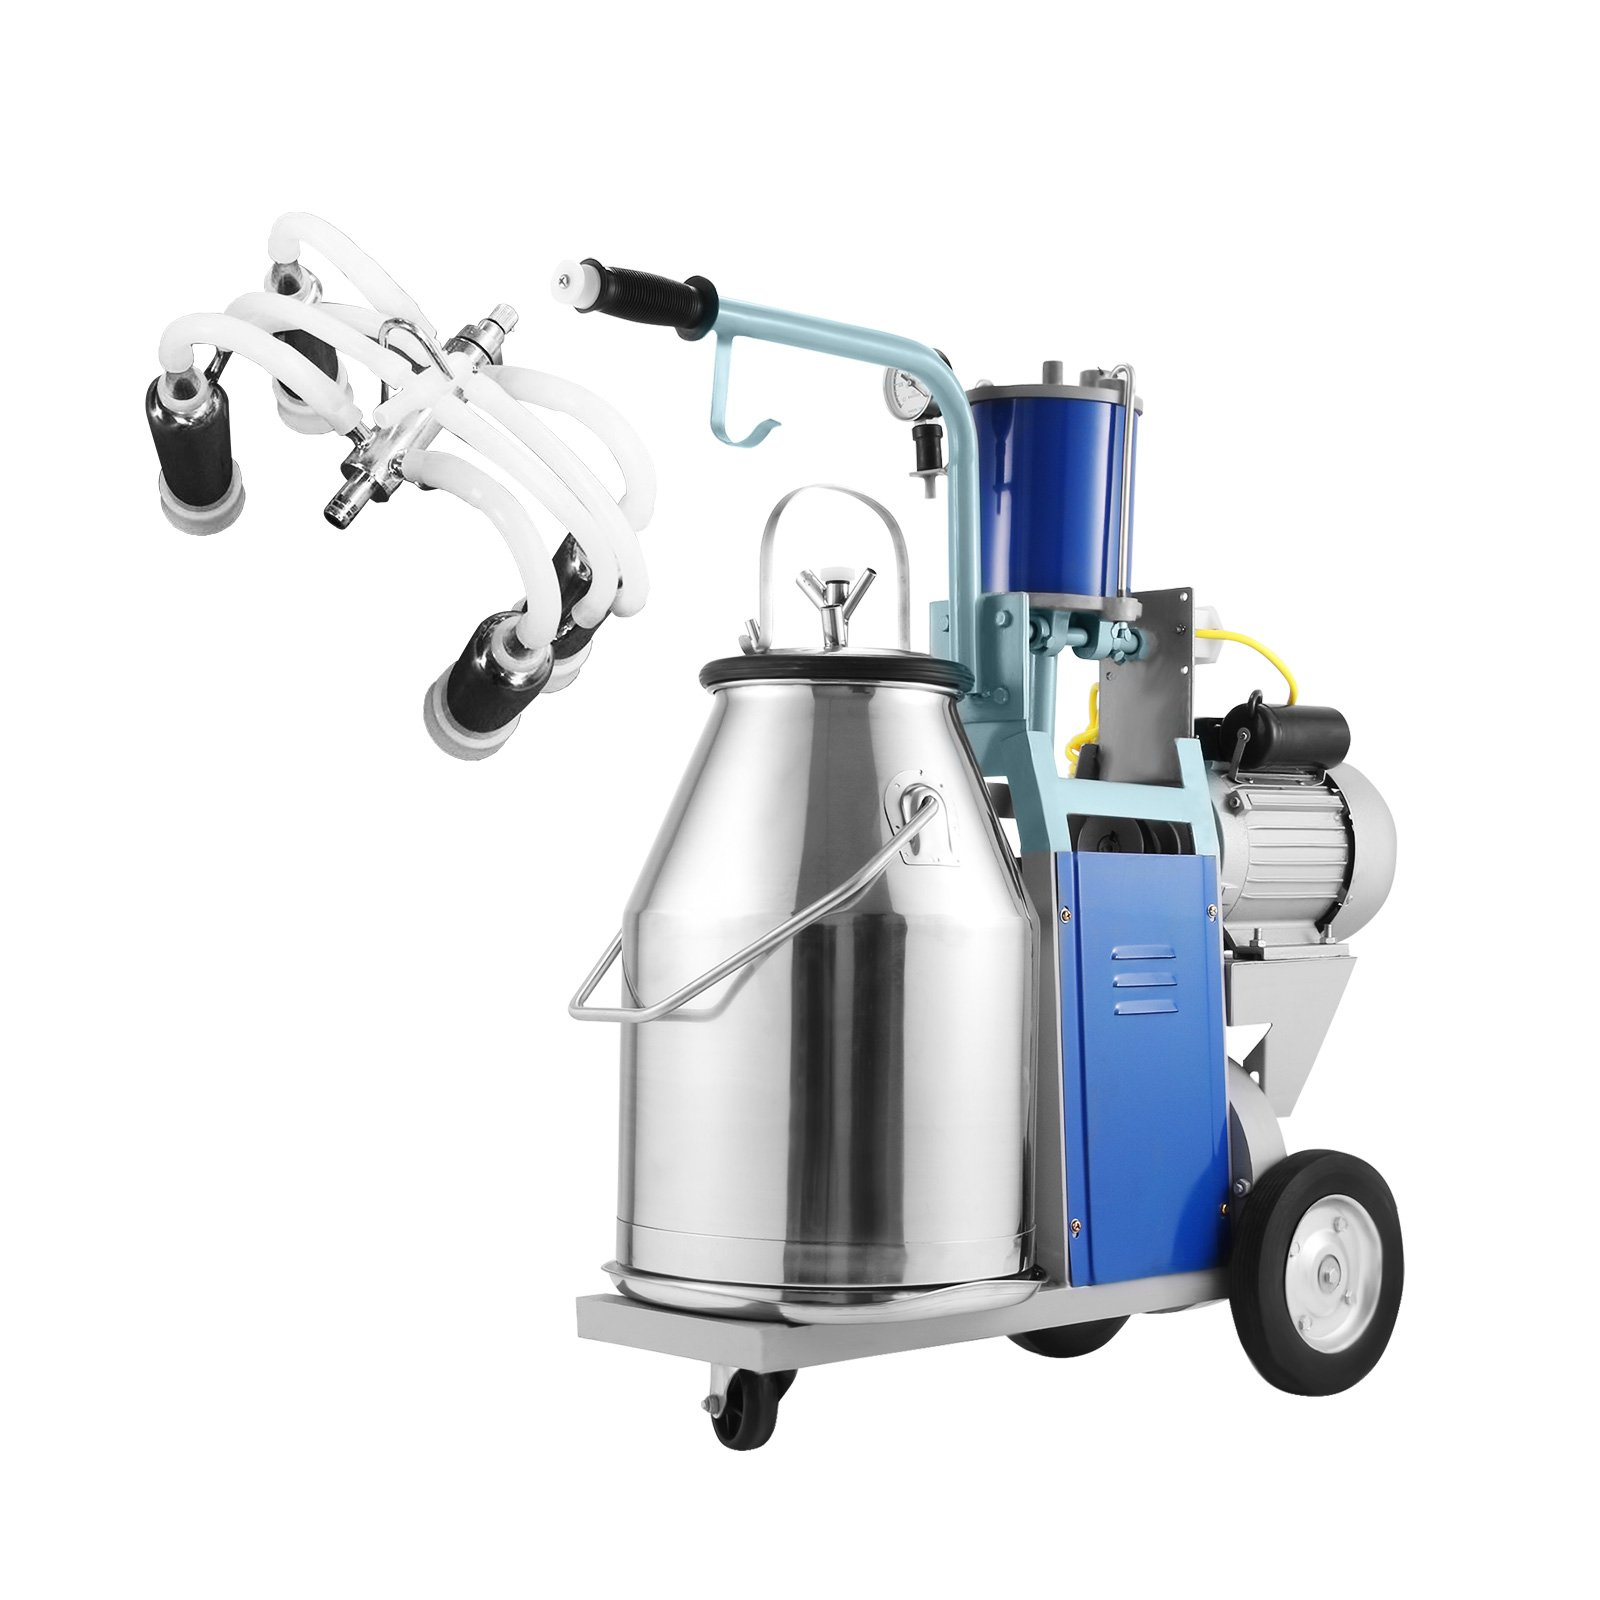 Happybuy Electric Milking Machine 25L Single Bucket Milking Machine 1440 RMP Piston Milking Machine for Cows or Sheep 304 Stainless Steel Bucket